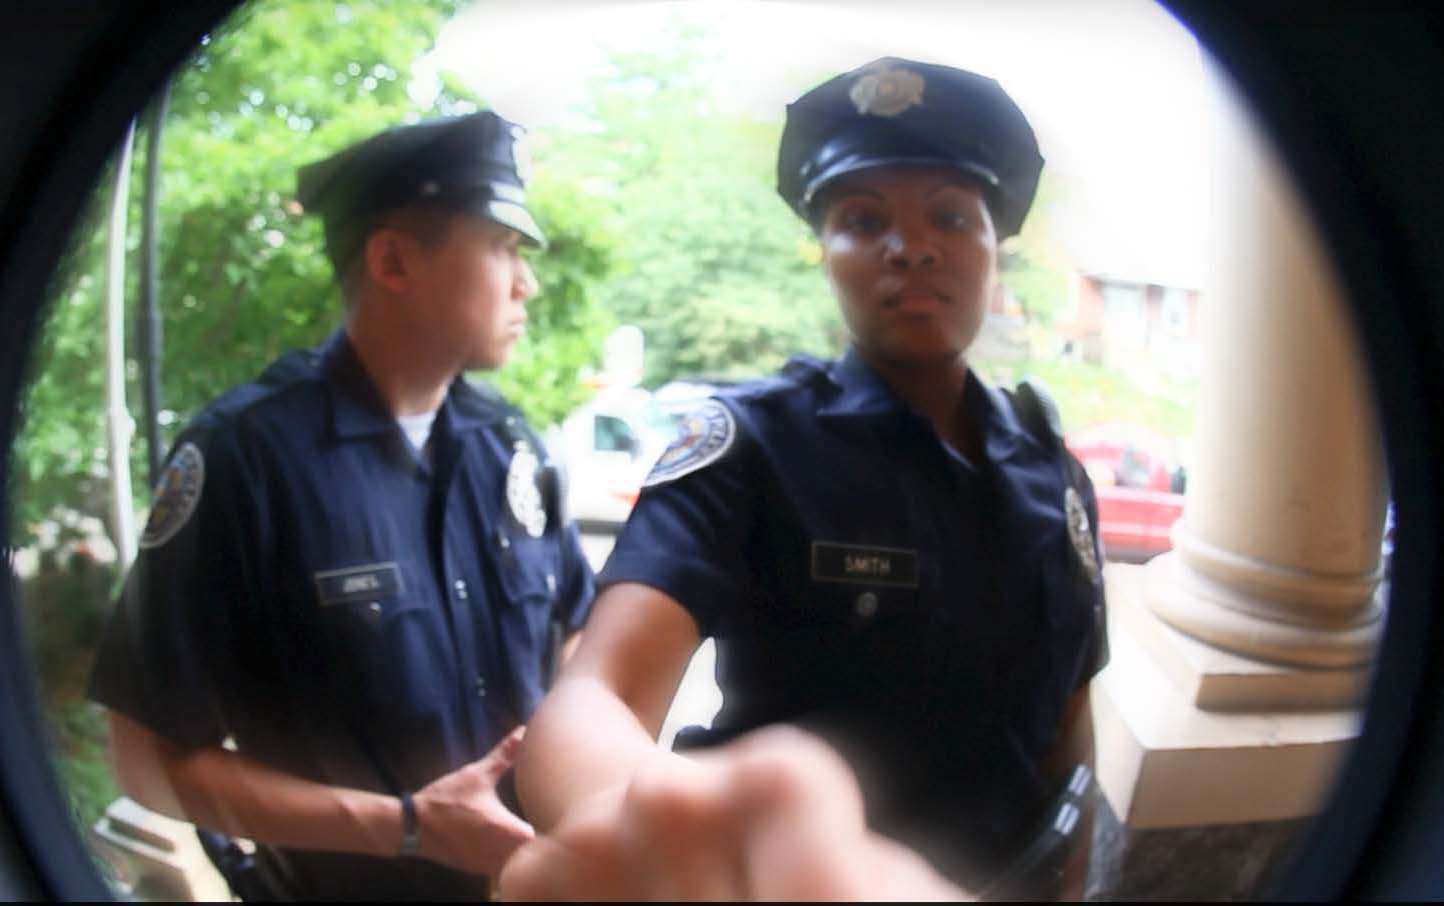 Police Officers ringing a door bell